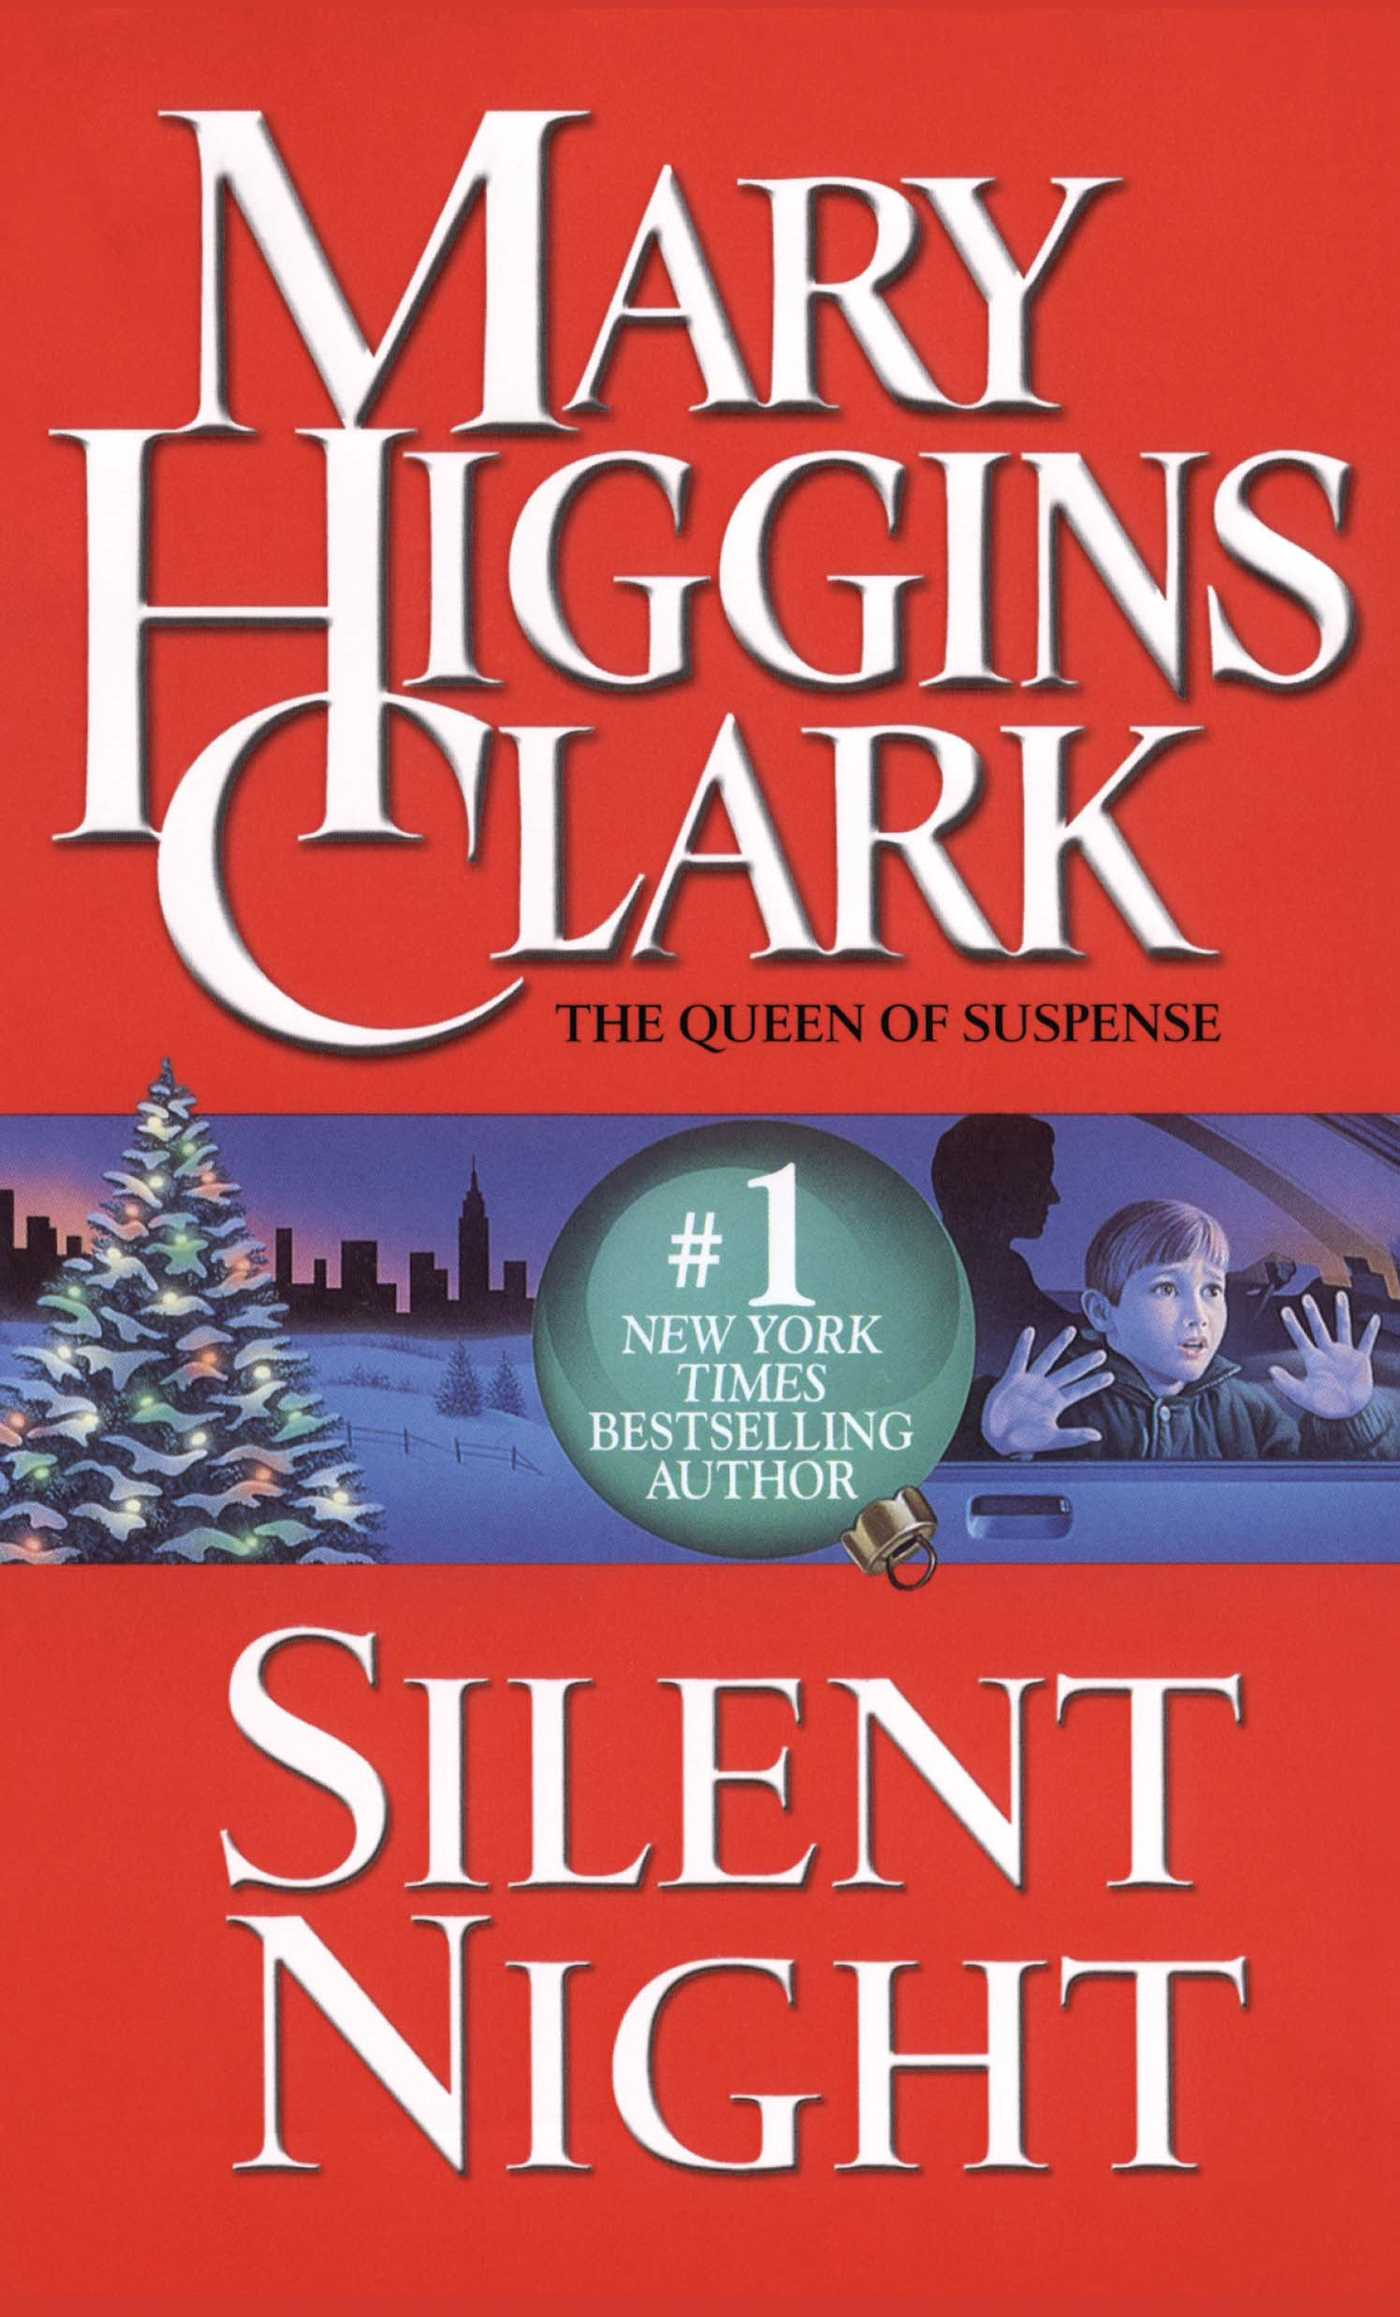 Silent night 9781501134067 hr